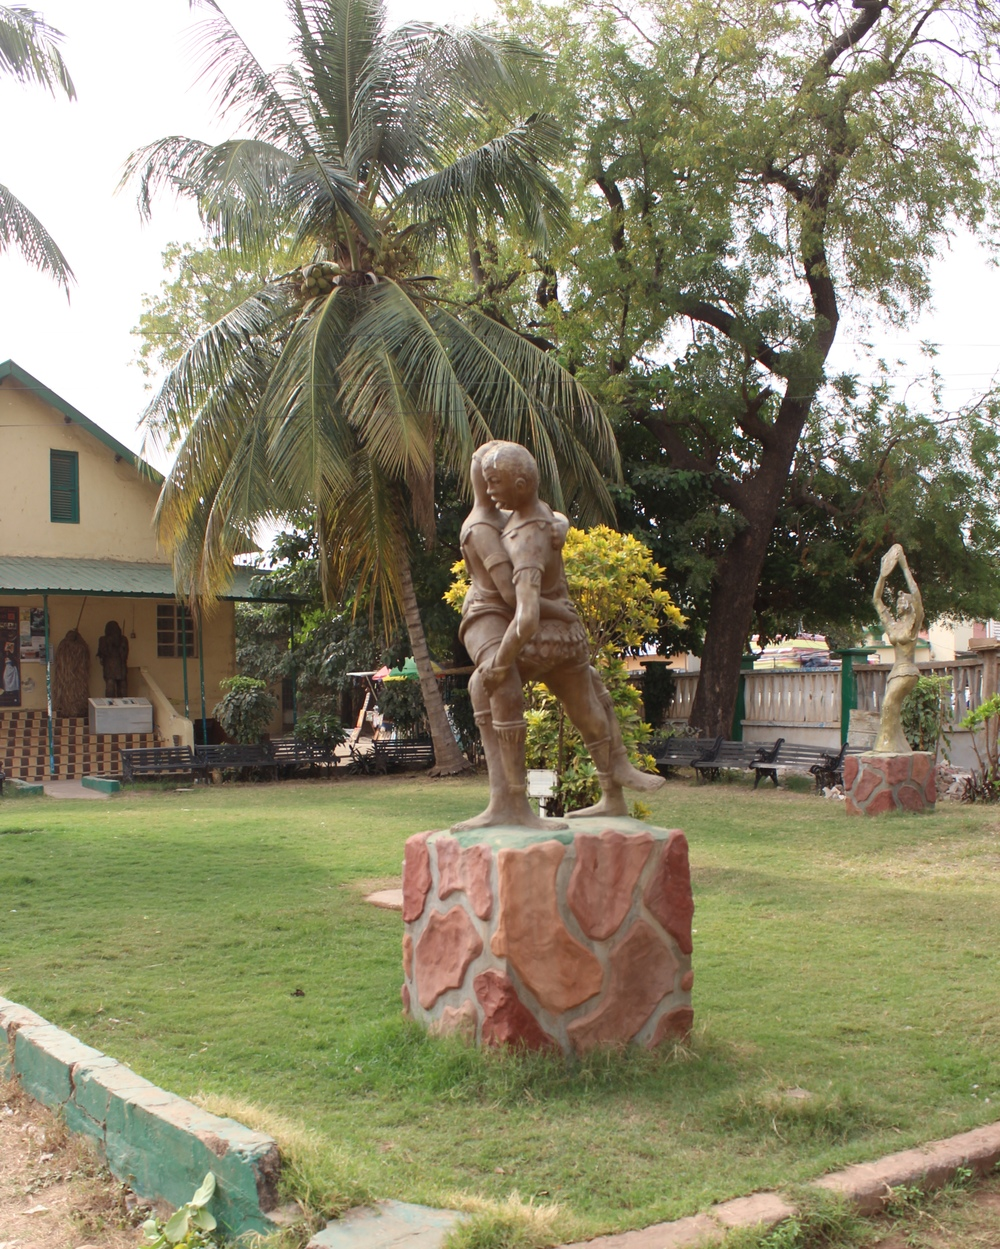 Grounds of the National Centre for Arts and Culture in Banjul.